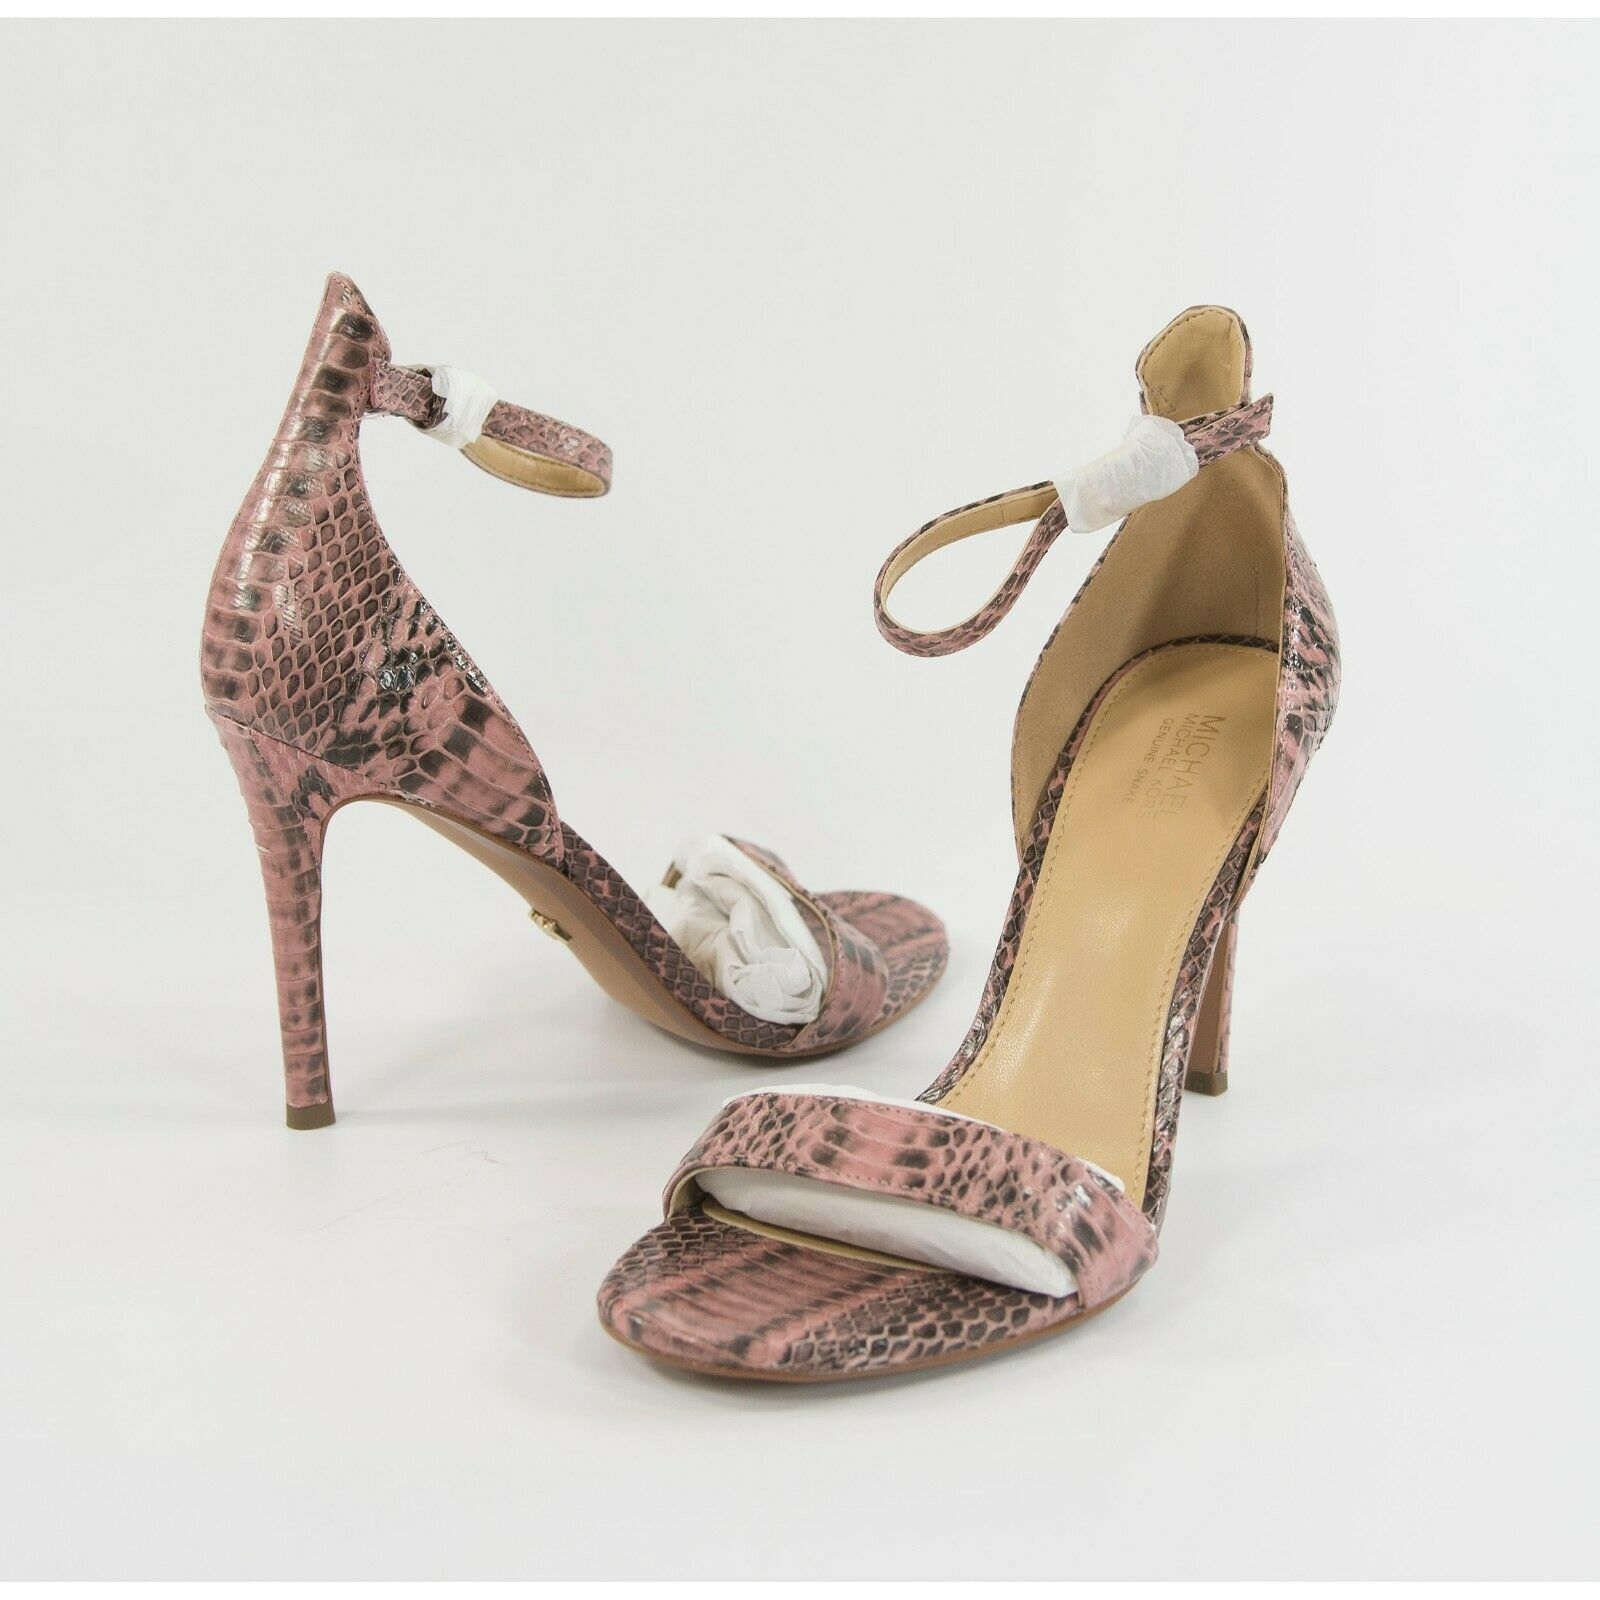 Primary image for Michael Kors Harper Rose Genuine Snake Ankle Strap High Heel Pumps 6.5 NIB